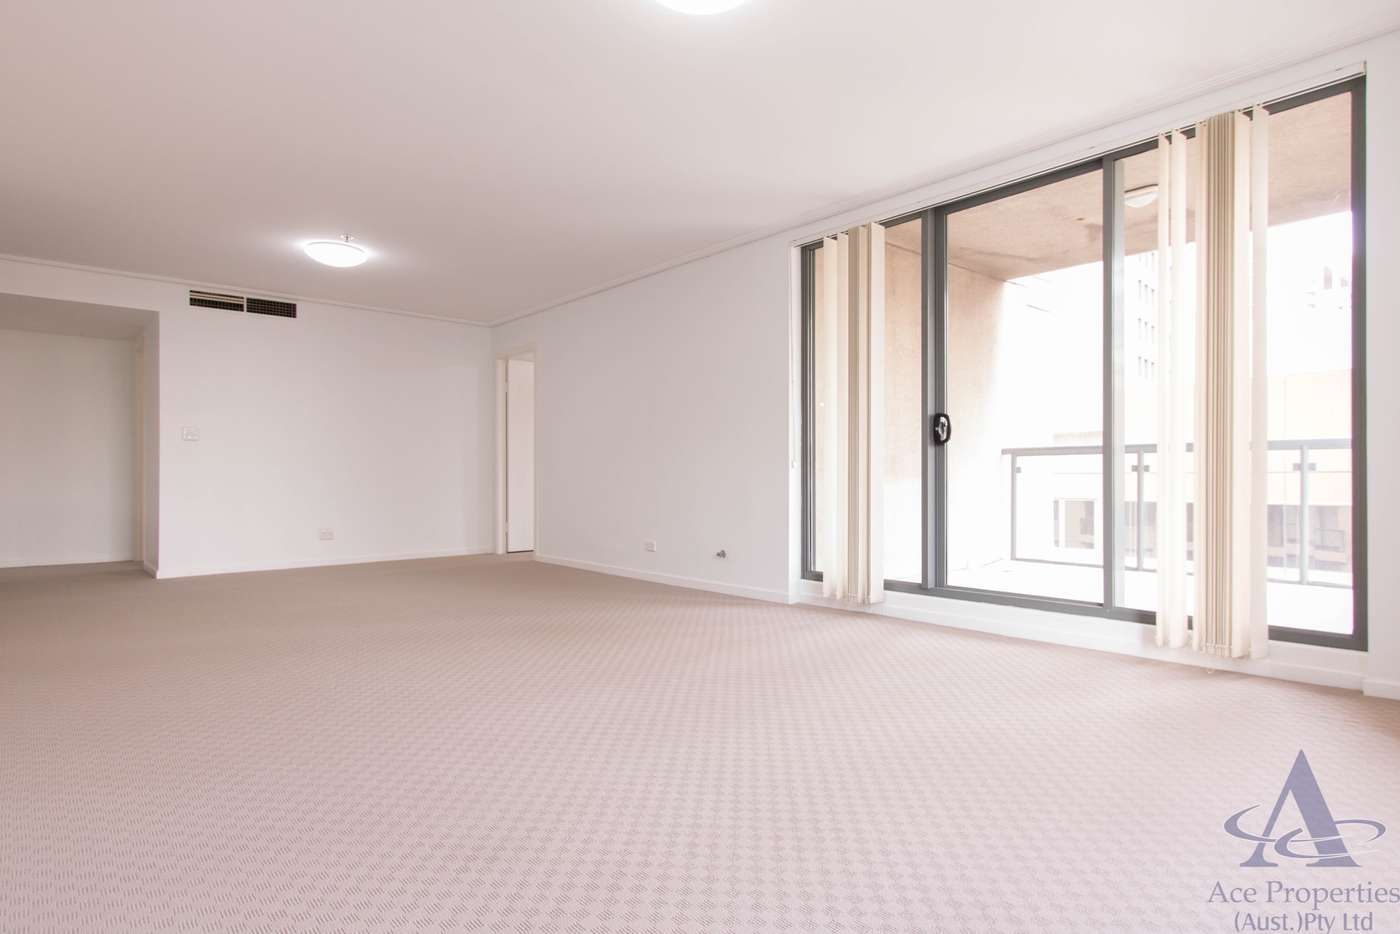 Main view of Homely apartment listing, 393 Pitt Street, Sydney NSW 2000